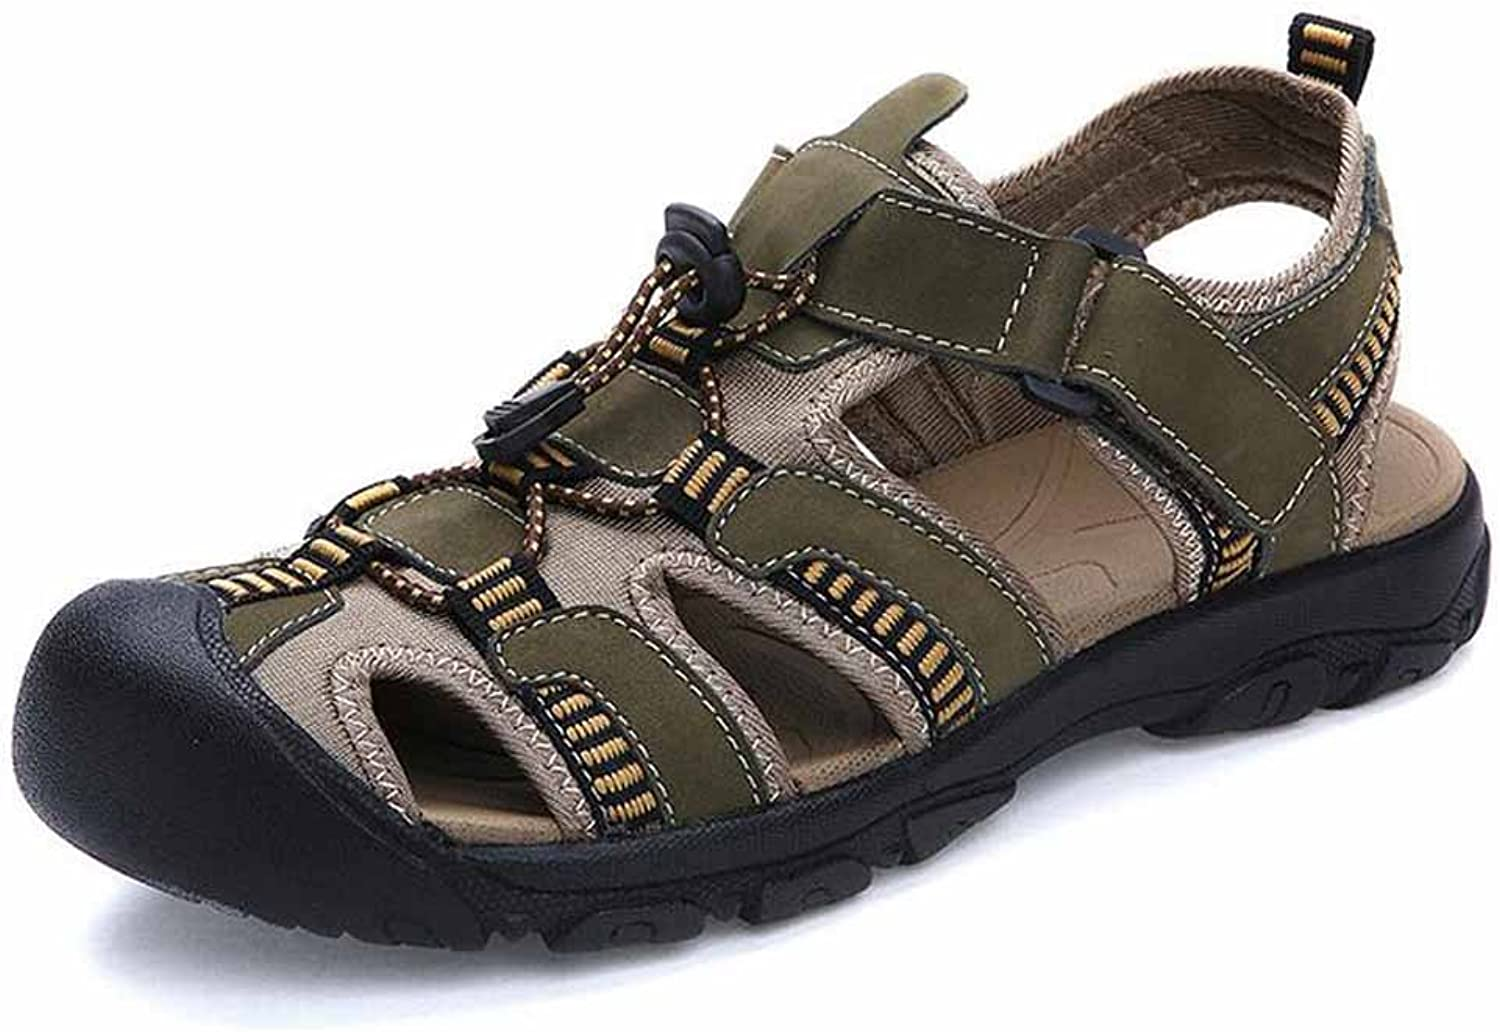 GLSHI Men Lightweight Outdoor Sandals Summer New Closed Toe Comfortable Beach shoes Hiking shoes